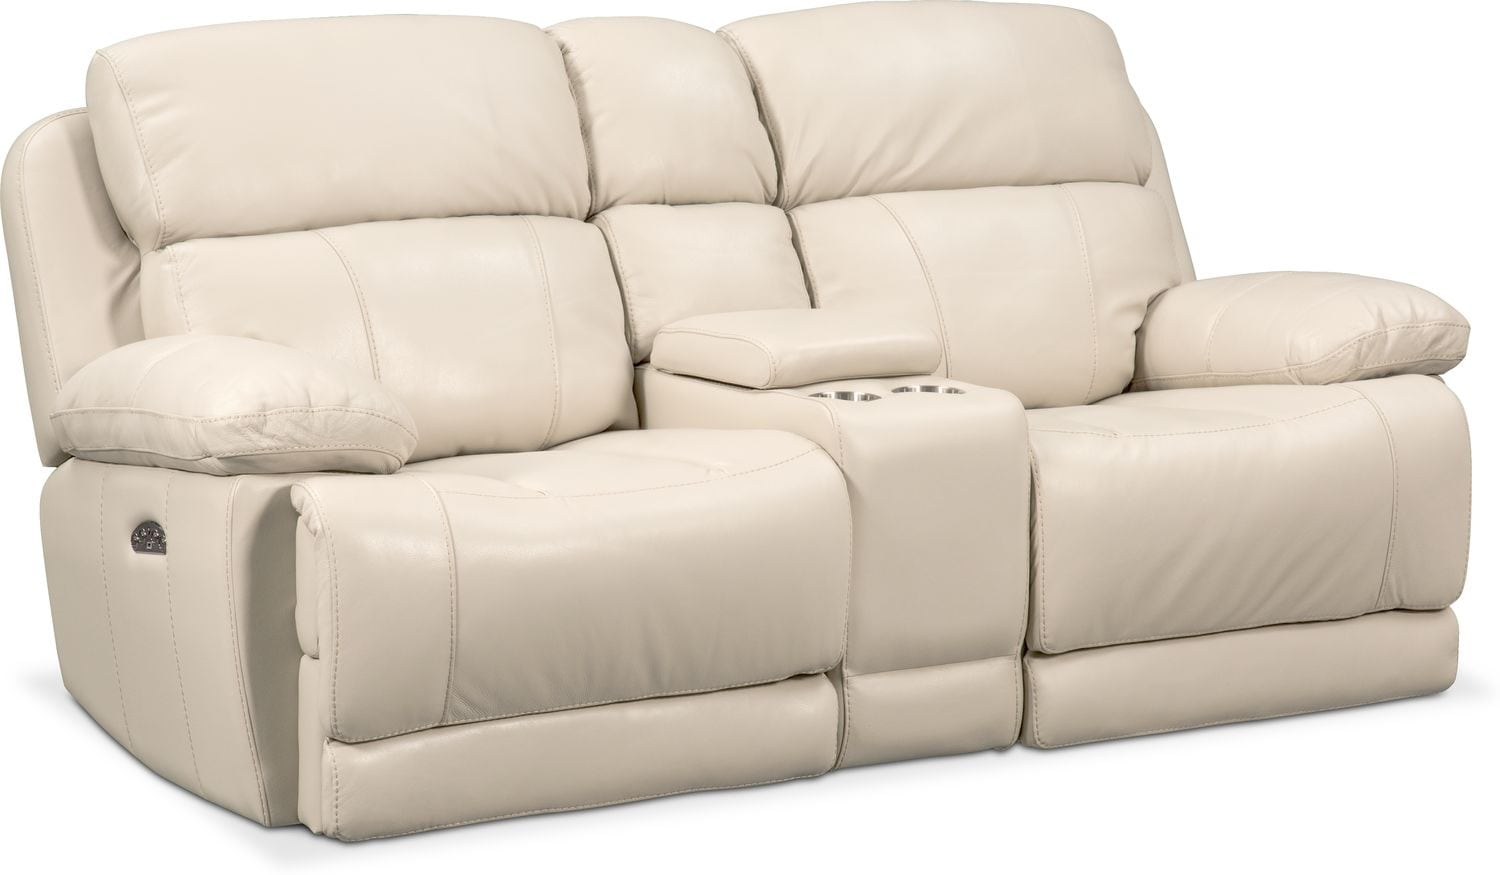 Sofas In Value City Furniture Monte Carlo Dual Power Reclining Sofa And Reclining